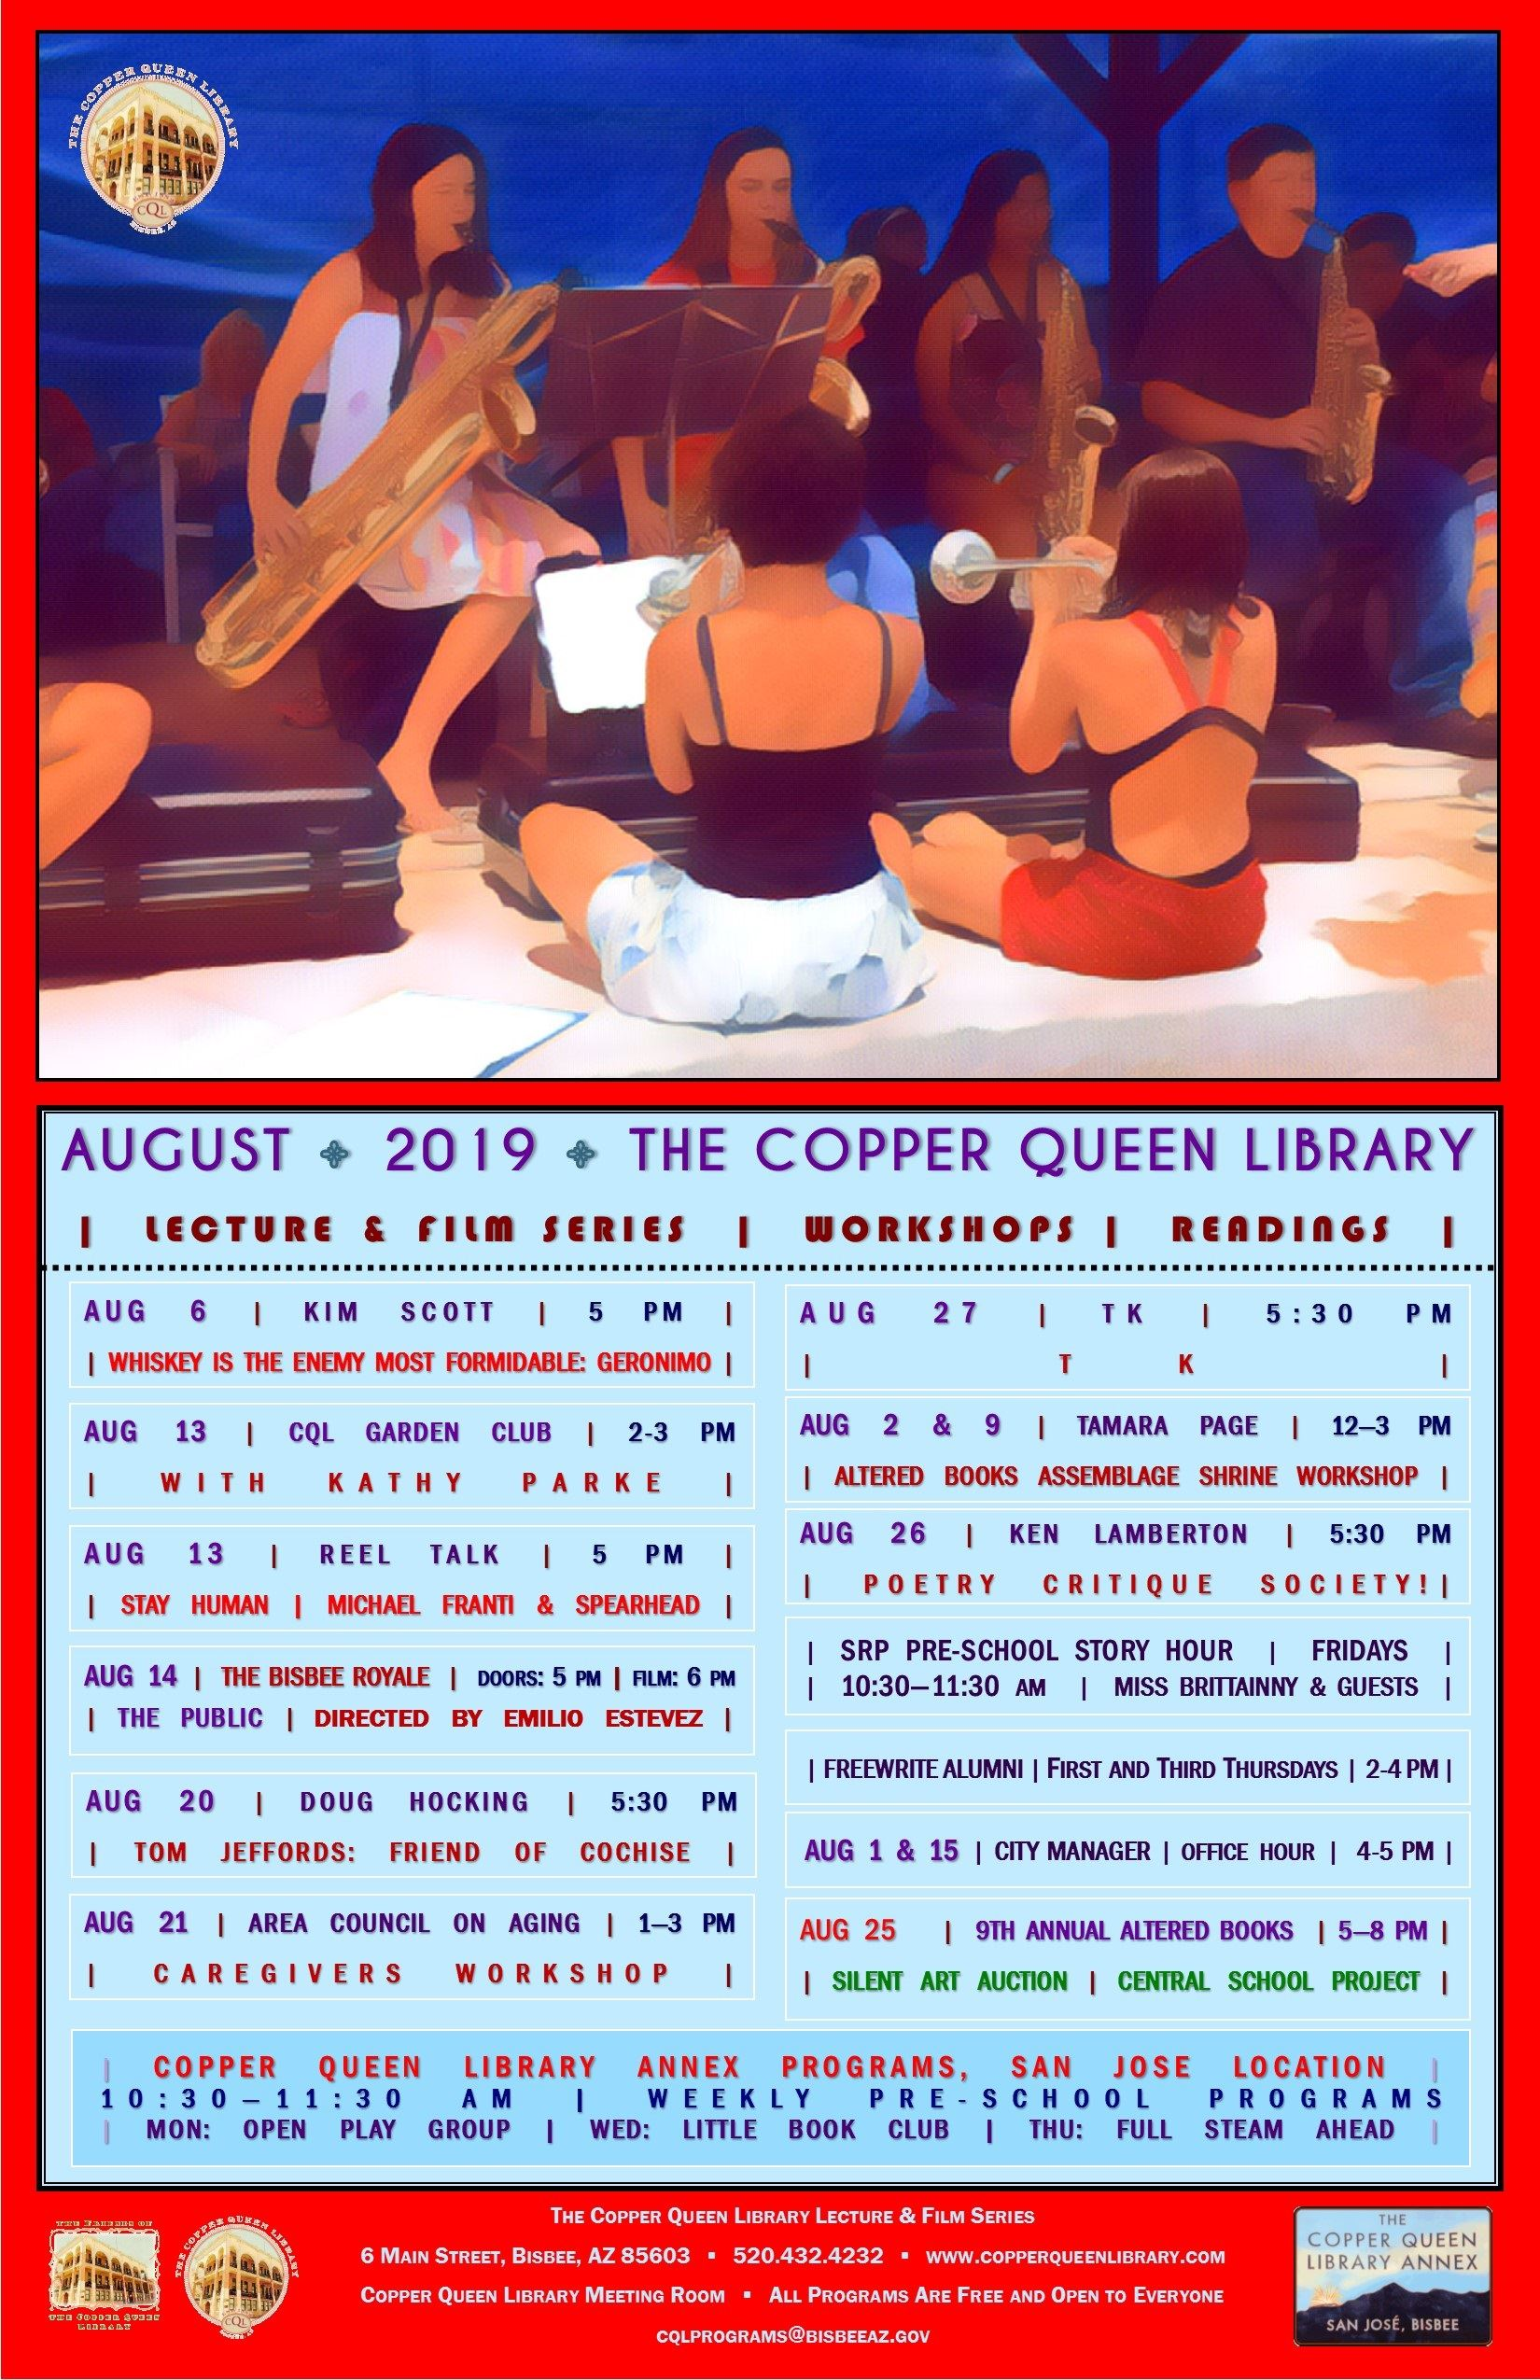 AUGUST 2019 MONTHLY SCHEDULE